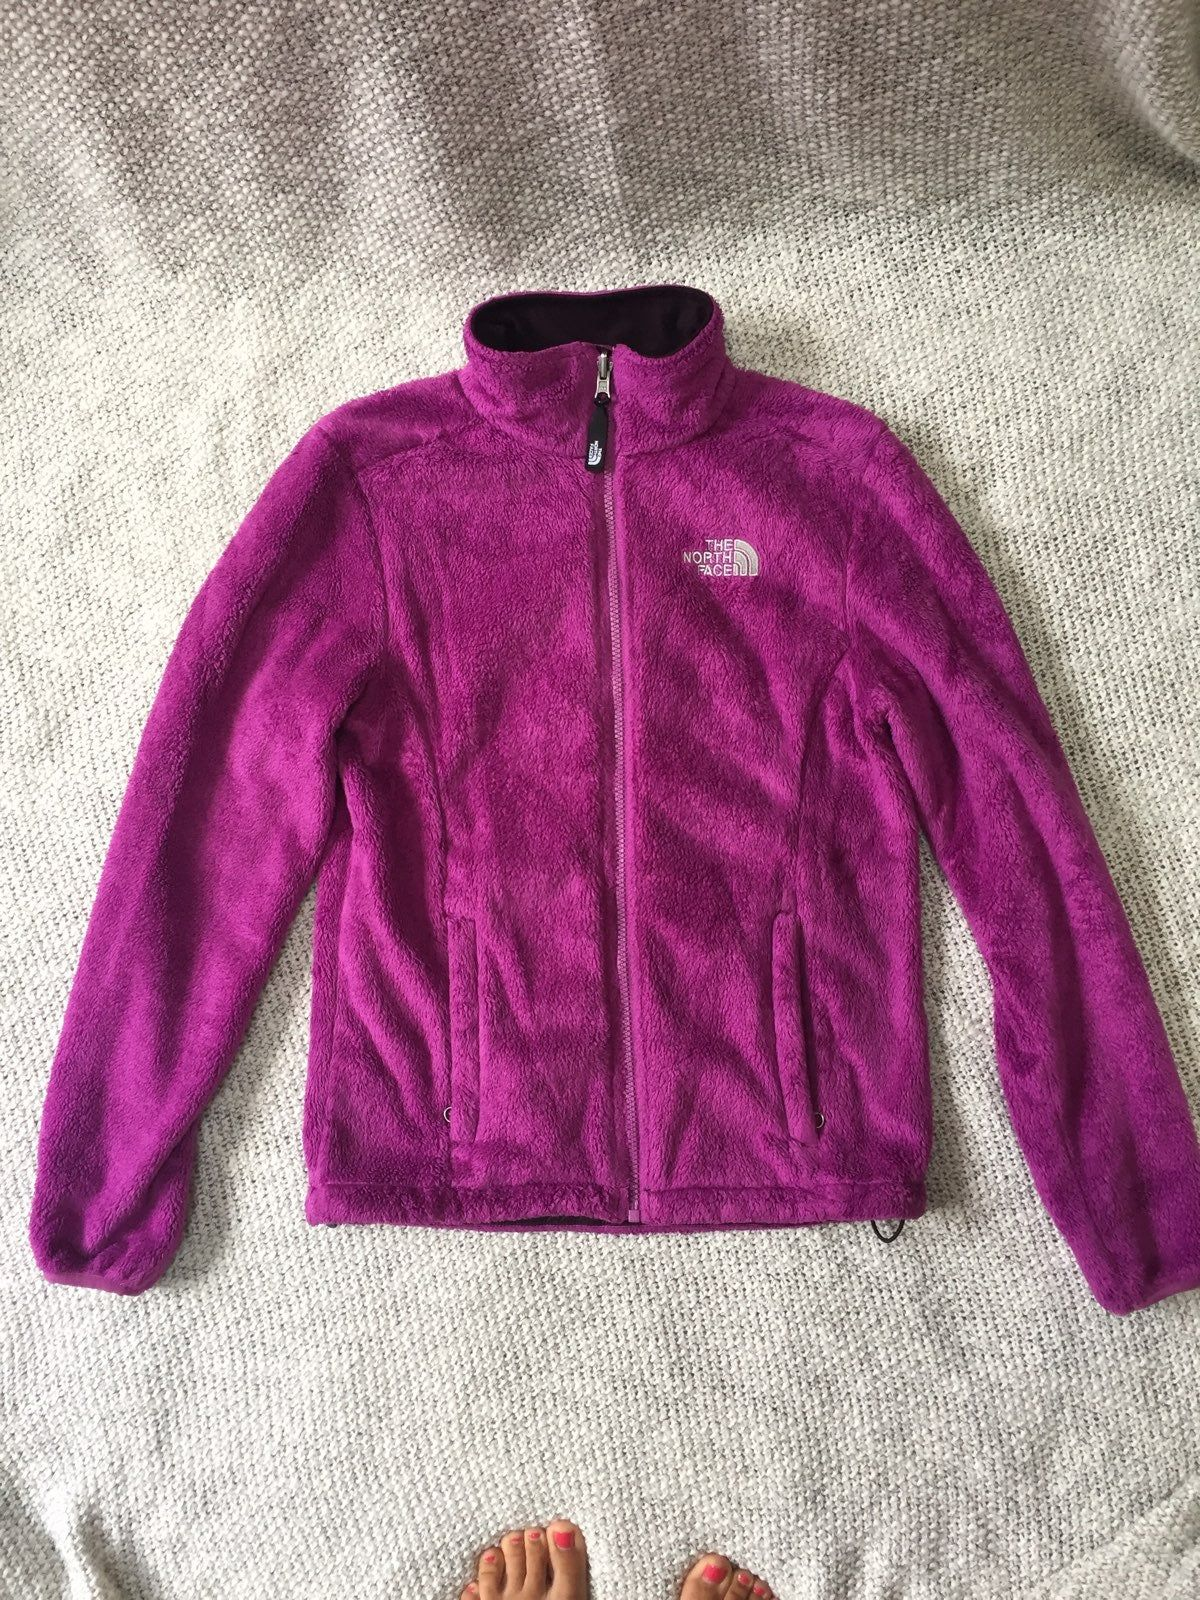 Purple Pink Fuzzy Fleece Full Zip North Face Jacket In Used Condition Adjustable Waste Fit North Face Fleece Jacket Jackets North Face Jacket [ 1600 x 1200 Pixel ]